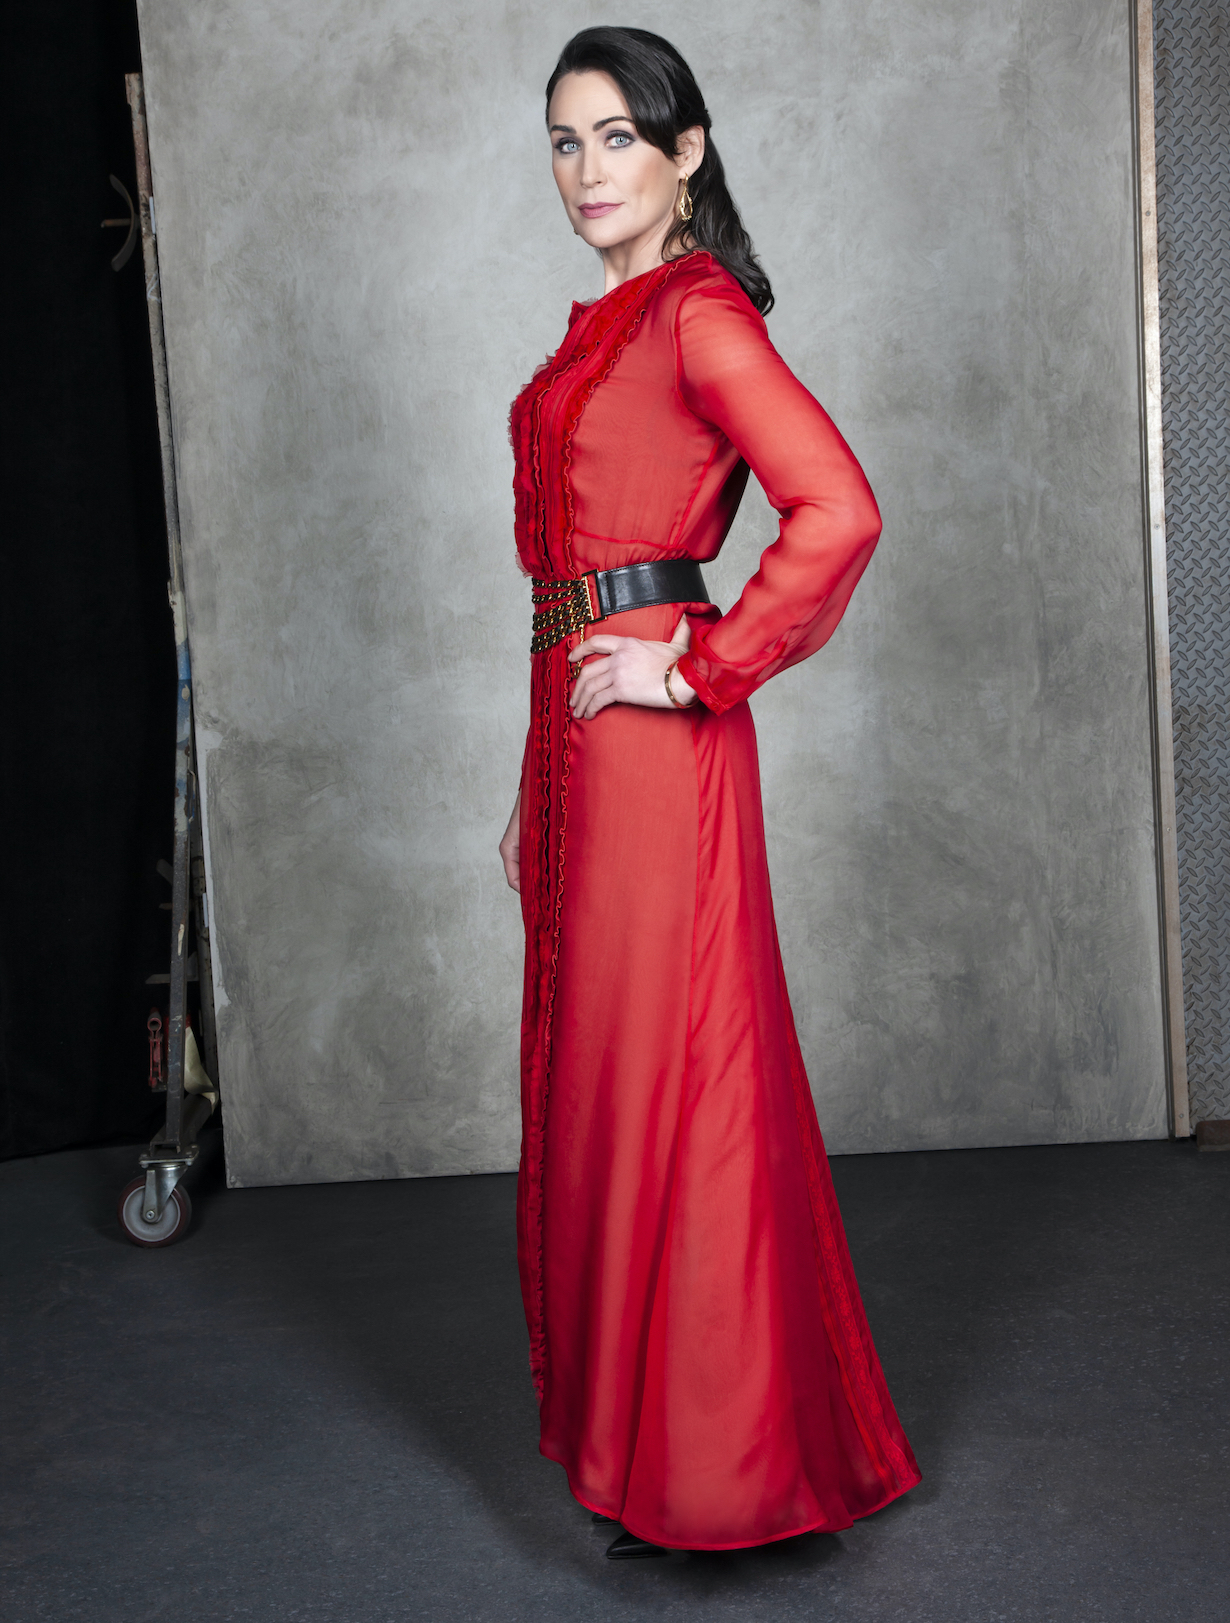 Rena Sofer of the CBS series THE BOLD AND THE BEAUTIFUL, Weekdays (1:30-2:00 PM, ET; 12:30-1:00 PM, PT) on the CBS Television Network. Photo: Gilles Toucas/CBS 2020 CBS Broadcasting, Inc. All Rights Reserved.